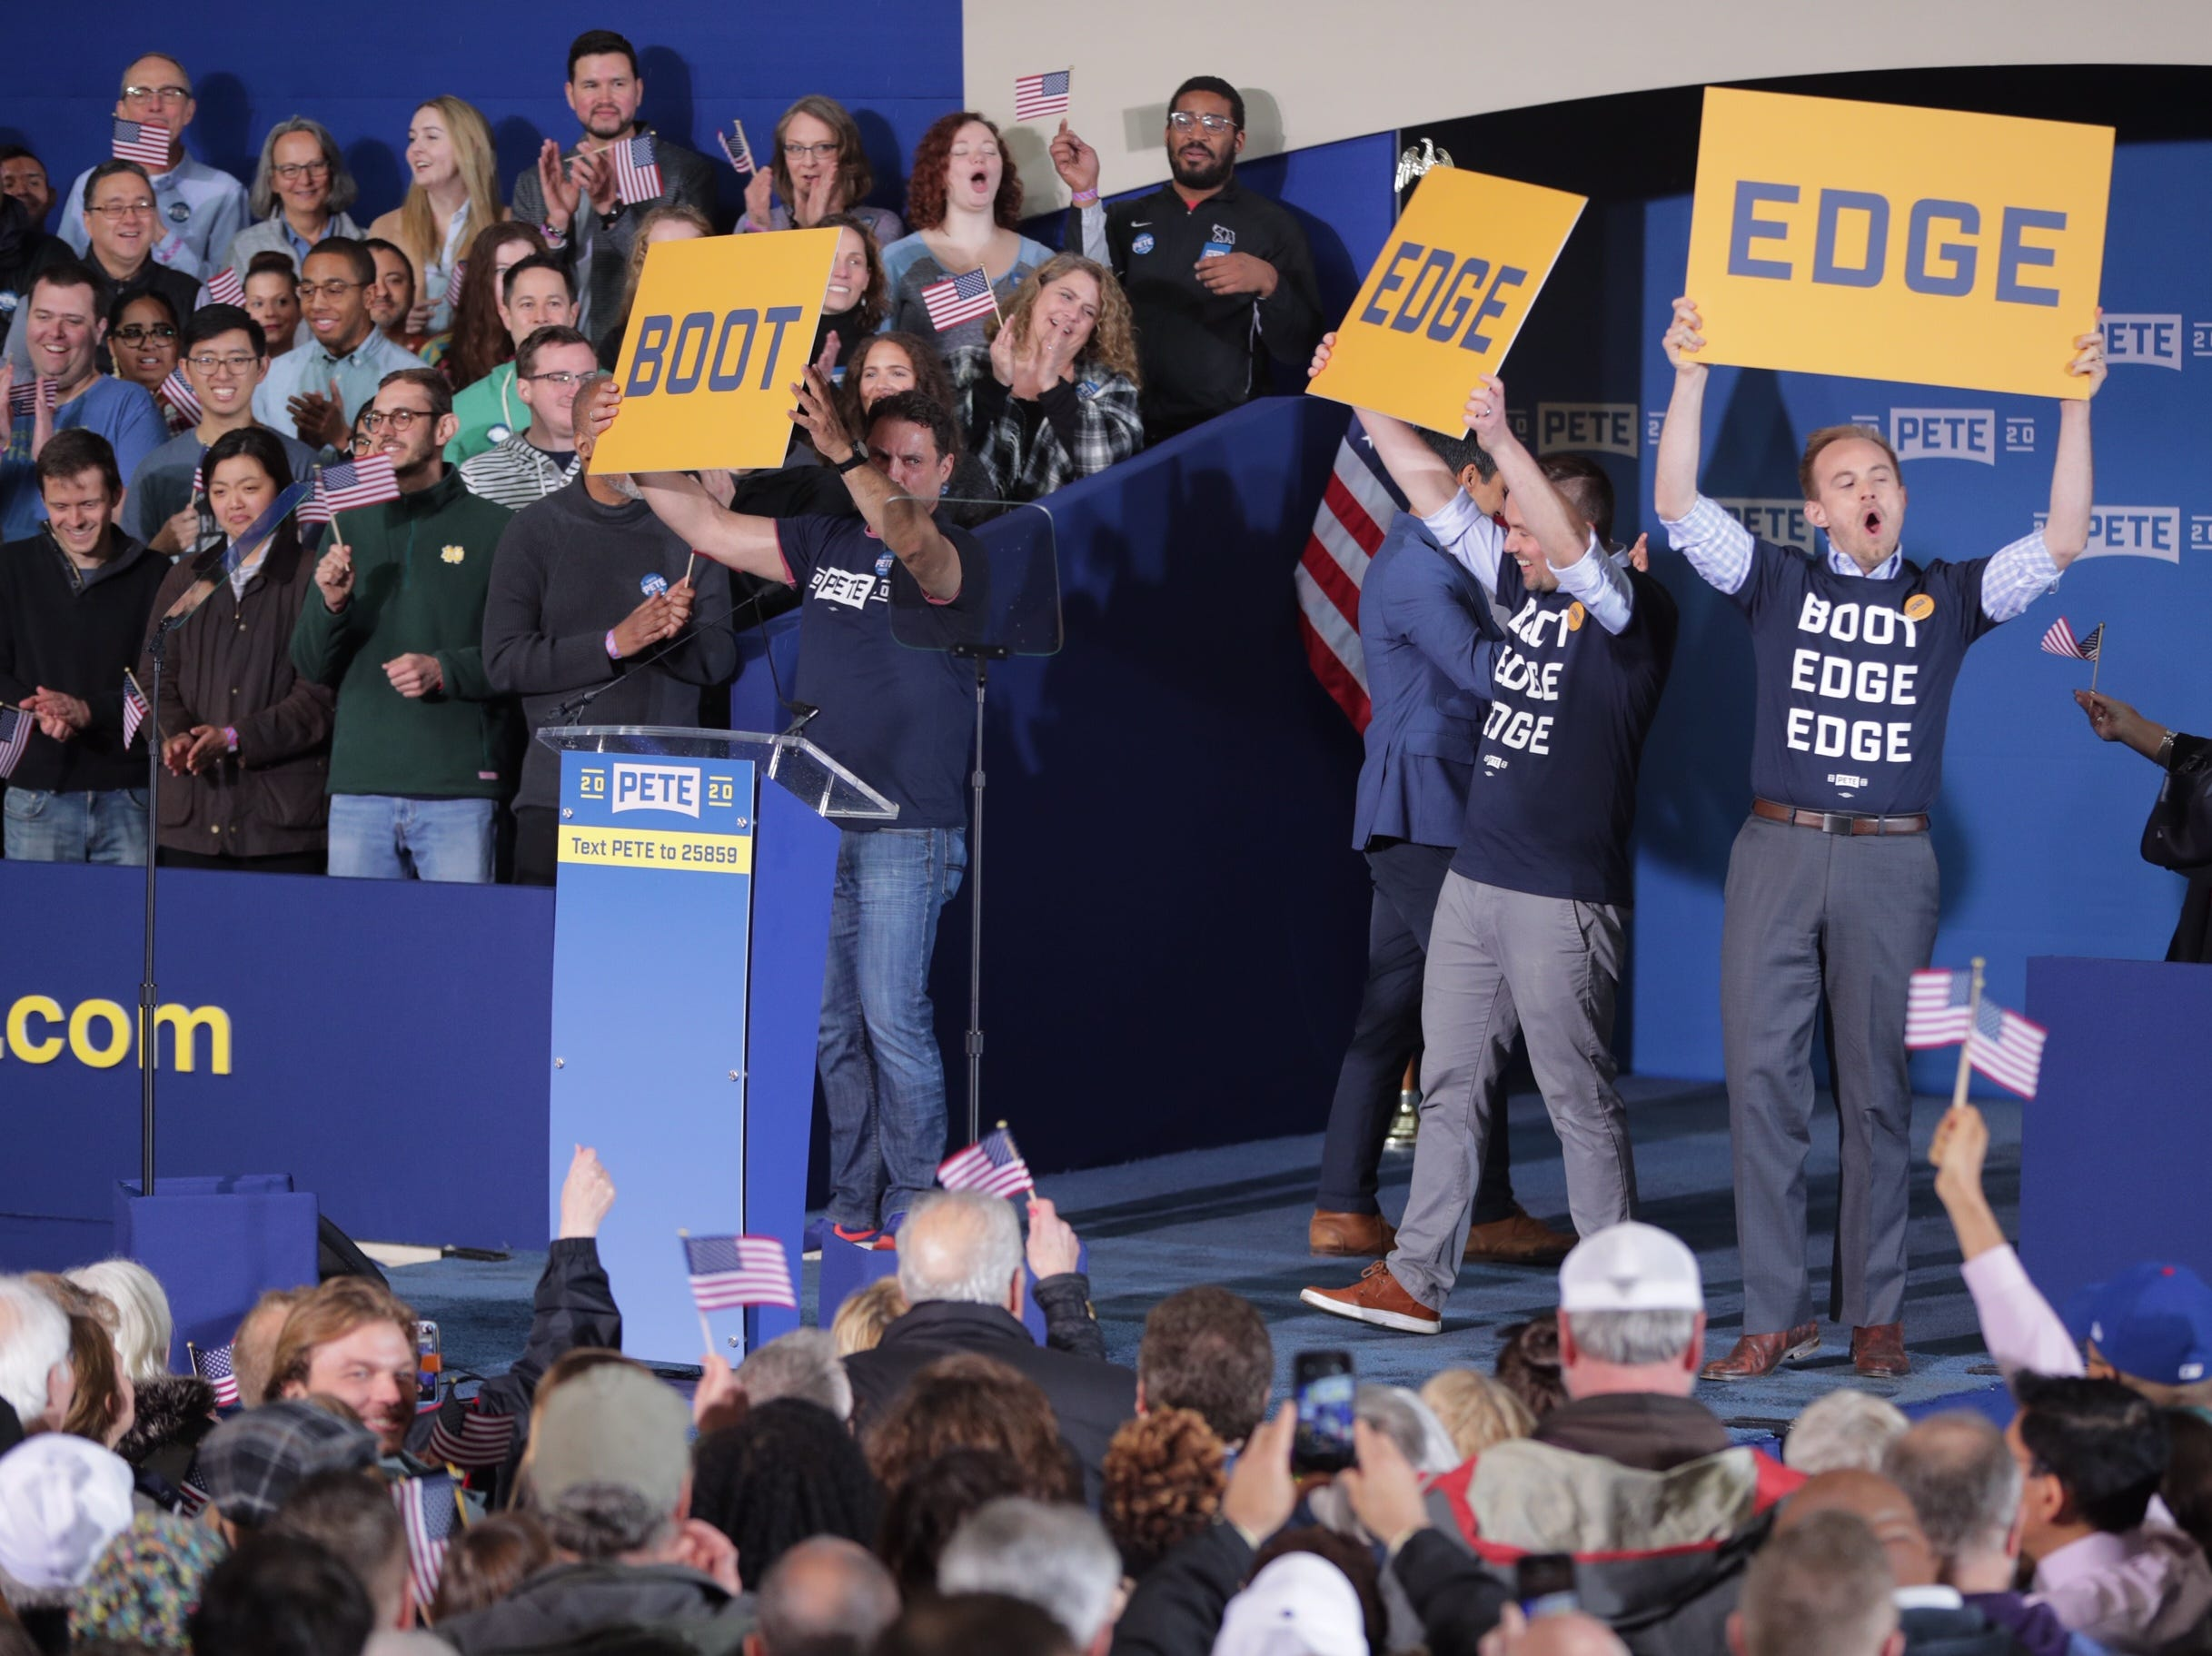 Campaign workers hold up signs with the pronunciation of Pete Buttigieg's last name on Sunday, April 14, 2019, before his announcement in South Bend that he is officially running for president.